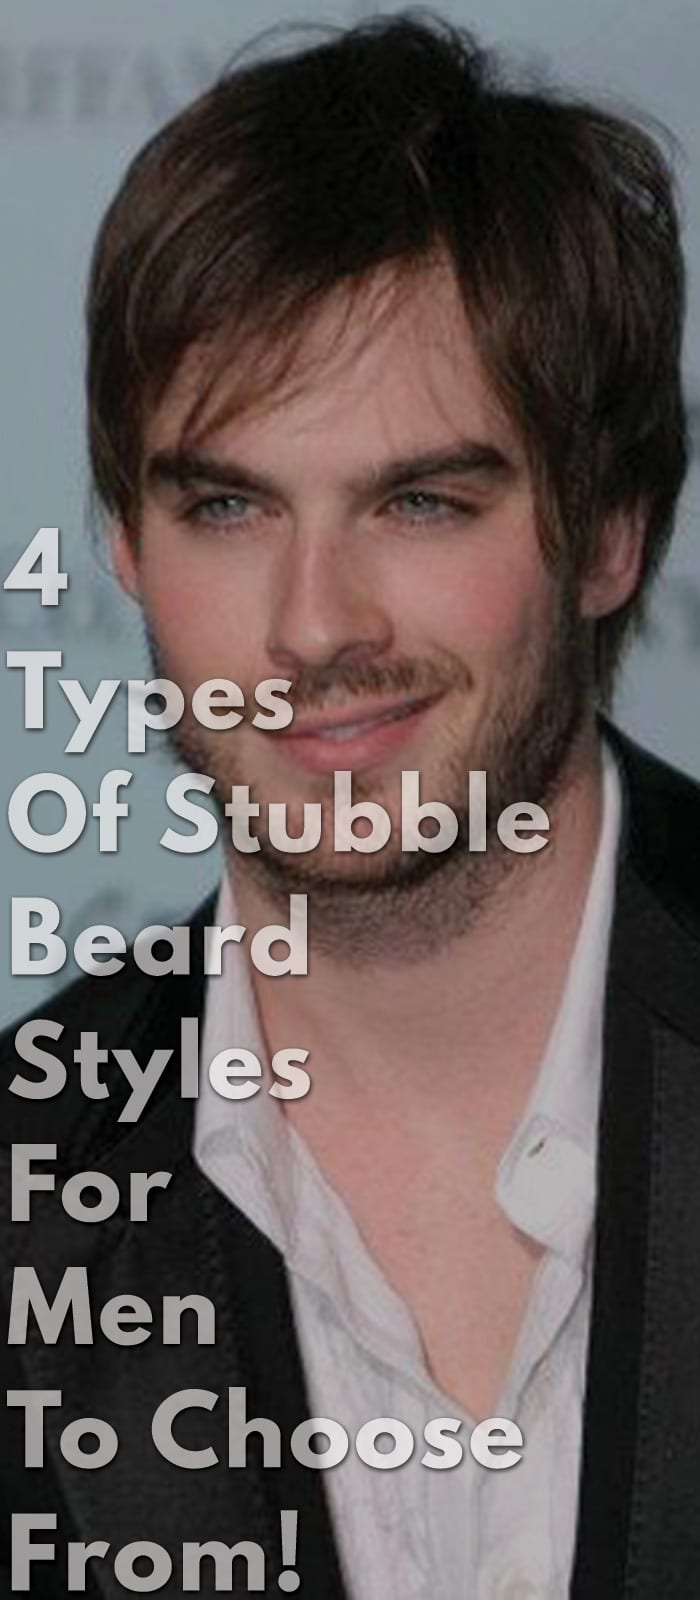 4-Types-Of-Stubble-Beard-Styles-For-Men-To-Choose-From!.